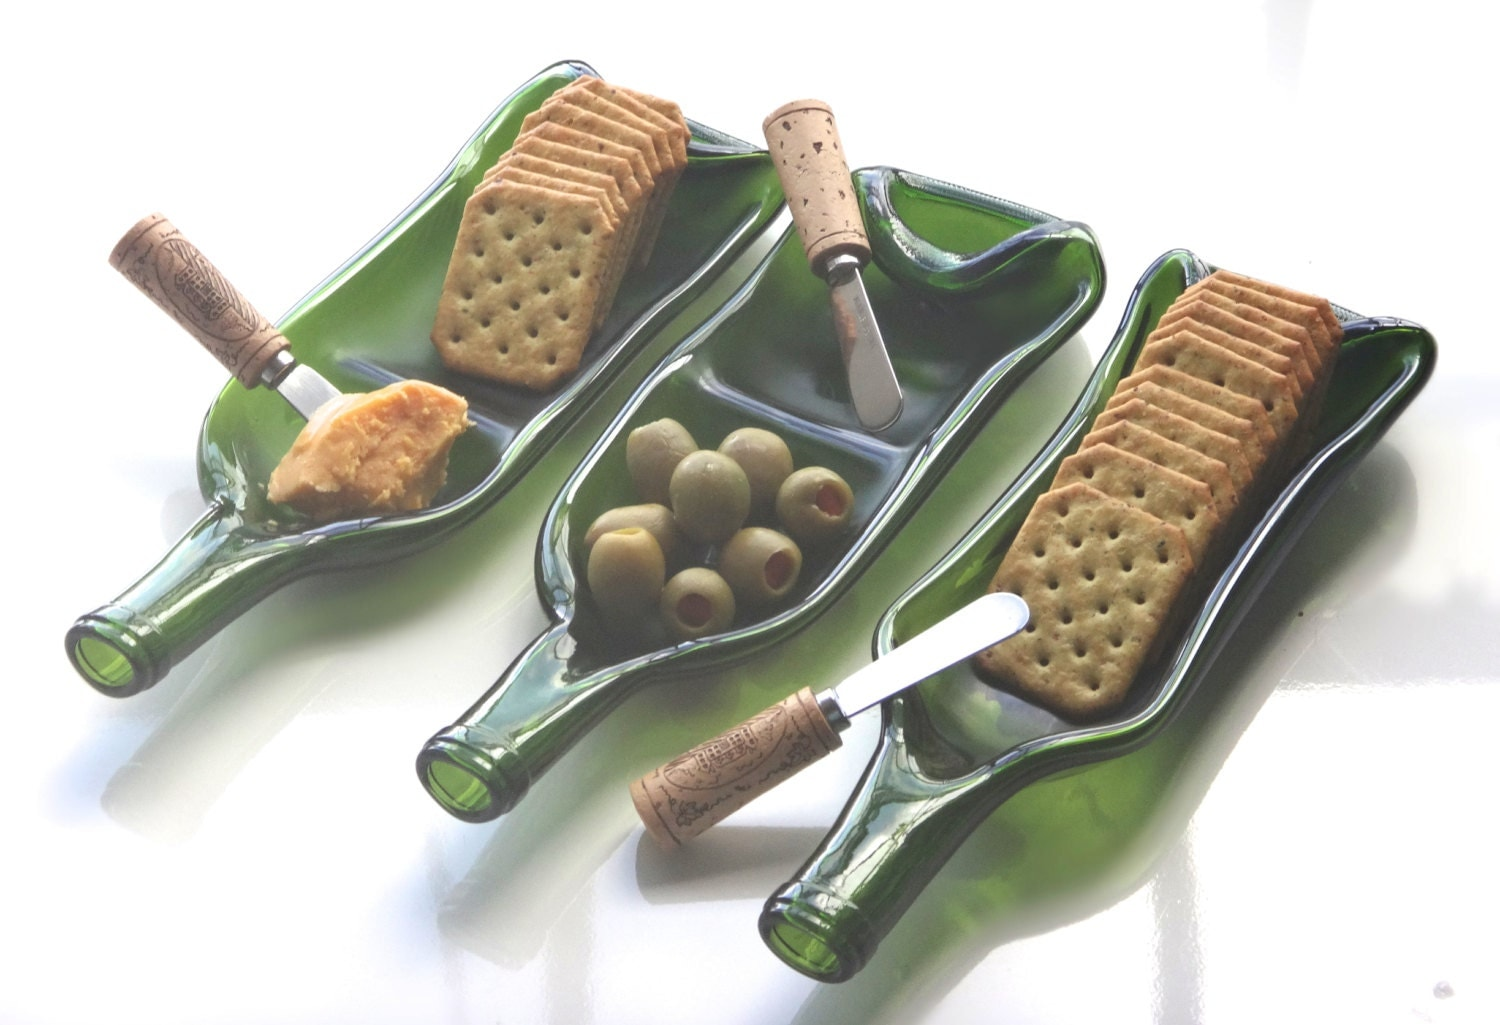 Melted wine bottle glass serving dish with cork spreader buy for Glass cutter to make glasses from bottles